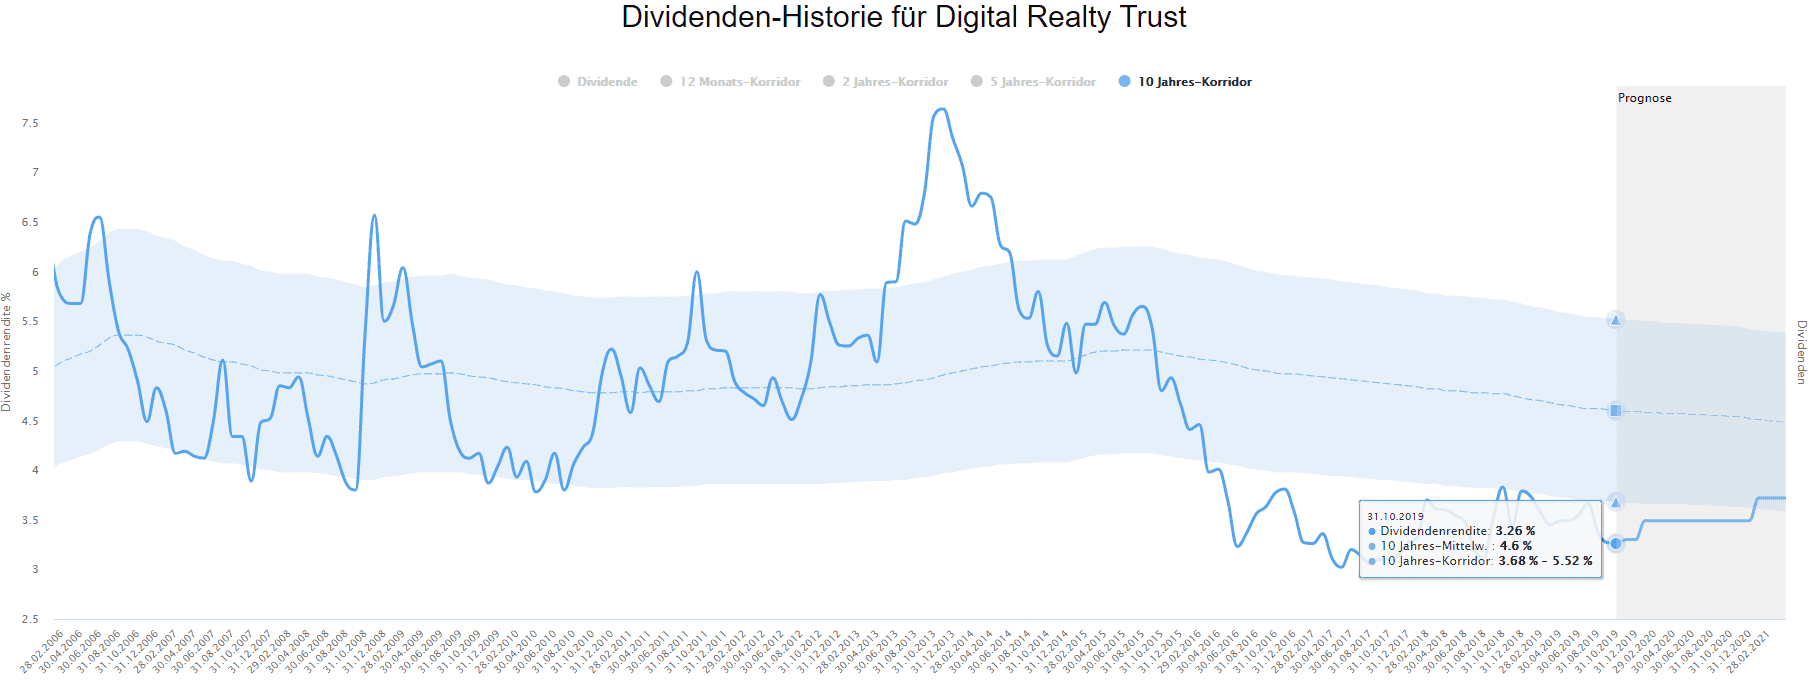 Digital Realty Trust im Dividenden-Turbo